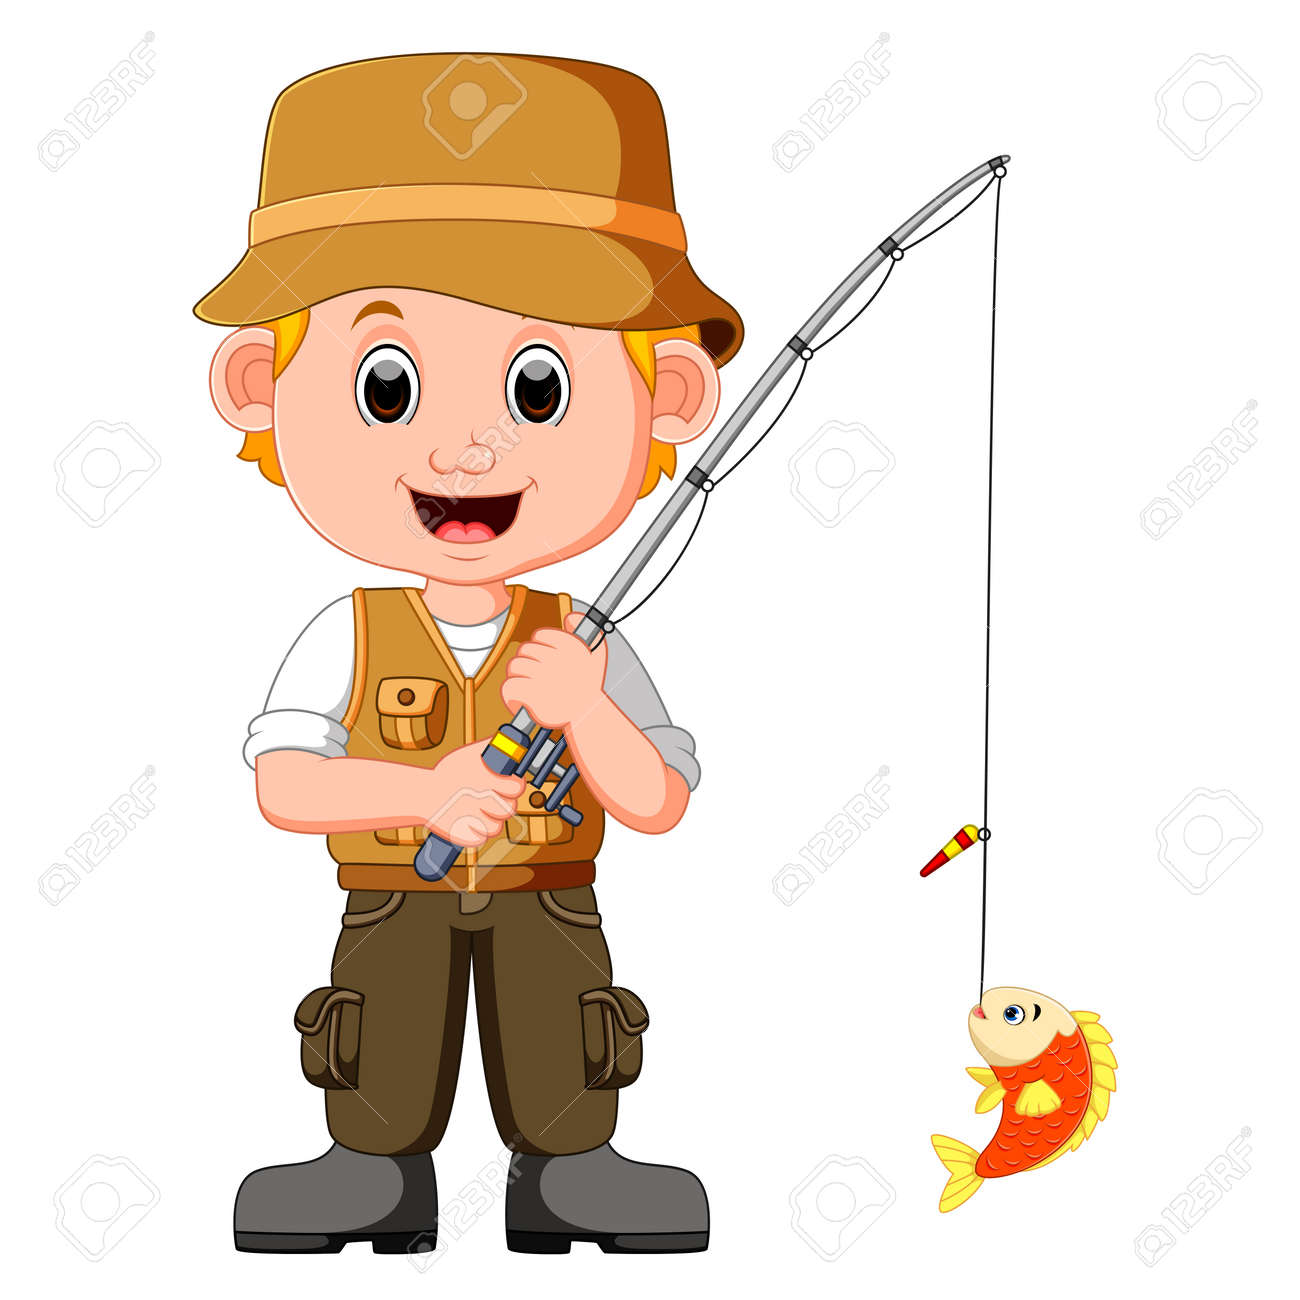 Cartoon Man Fishing Stock Photo Picture And Royalty Free Image Image 79609183